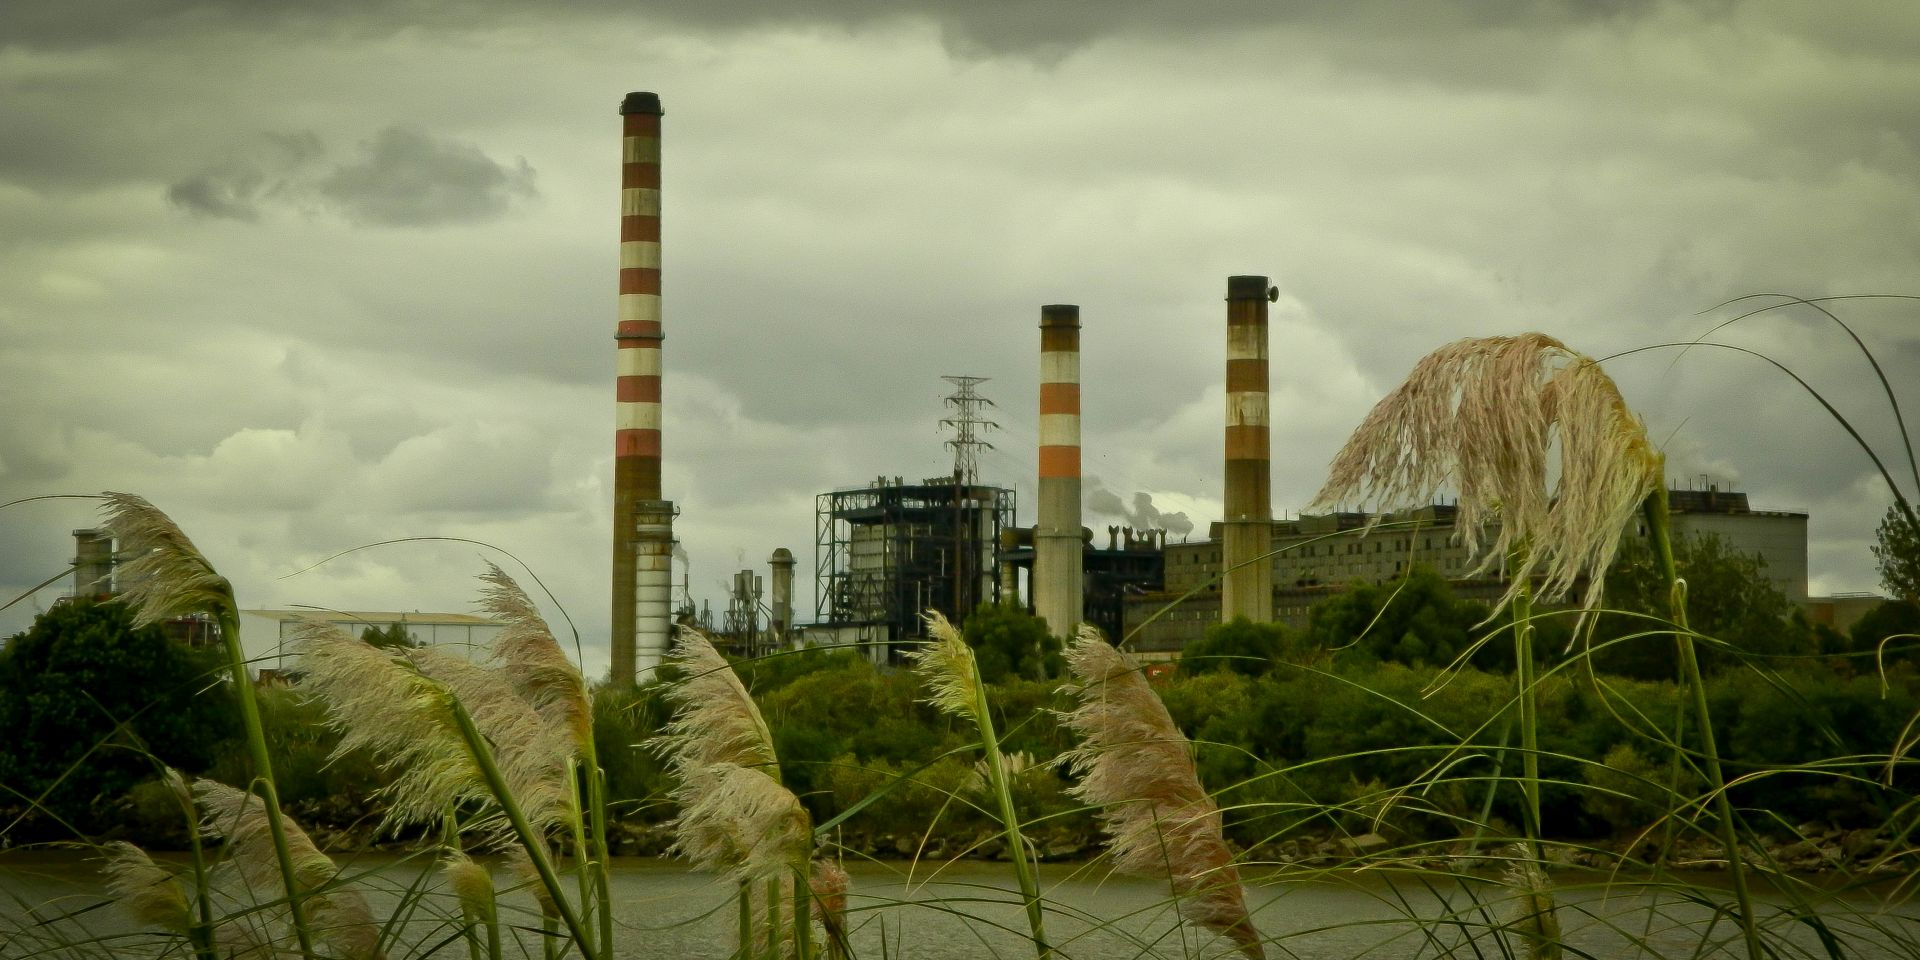 view of the thermal power station Costanera Argentina on a cloudy day with smoke behind